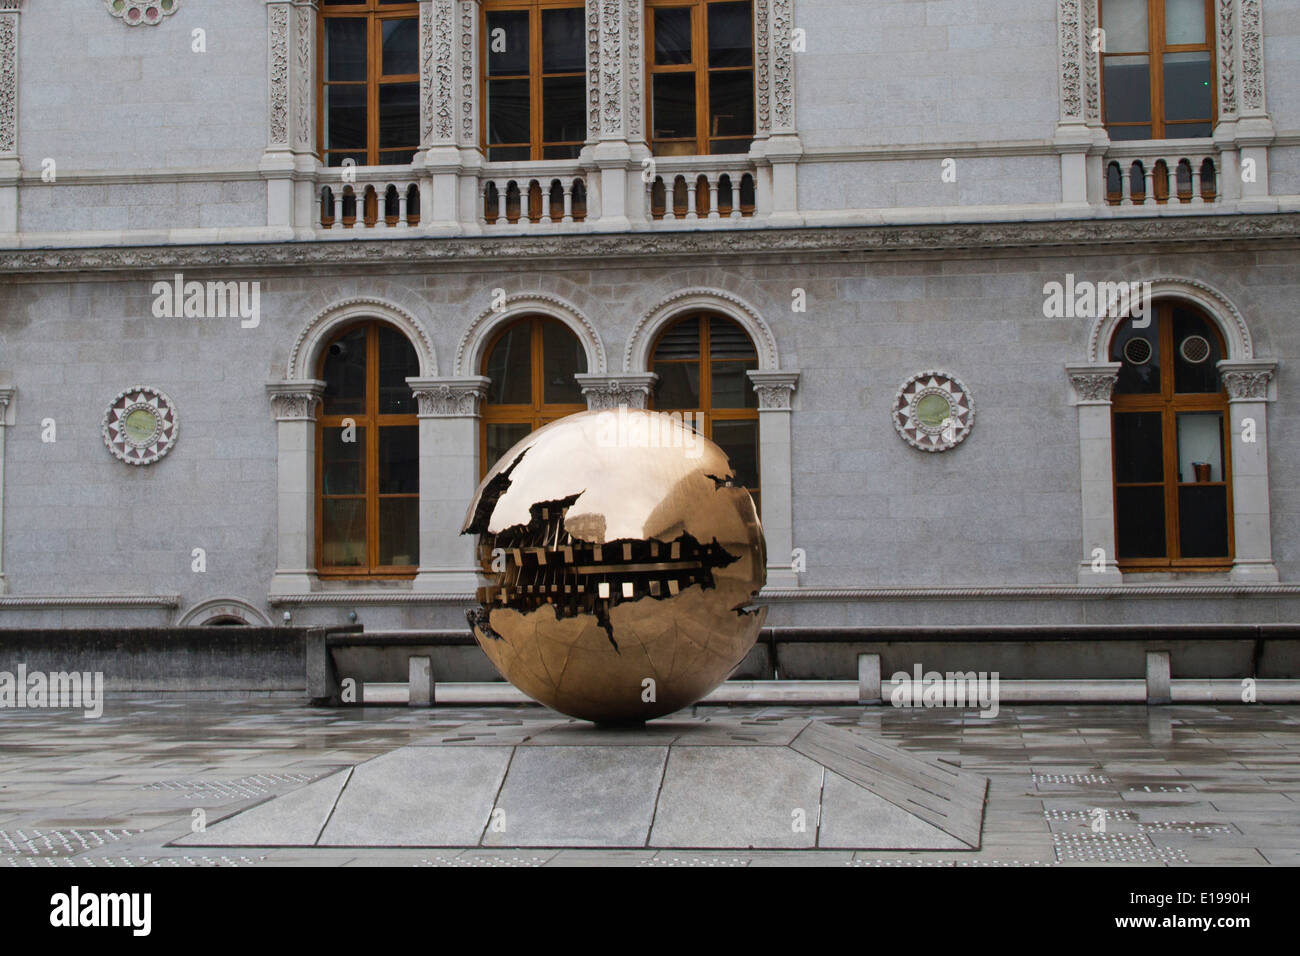 Metal sculpture called 'Sphere within Sphere' by Arnaldo Pomodoro on the grounds of Trinity College Dublin,Ireland - Stock Image